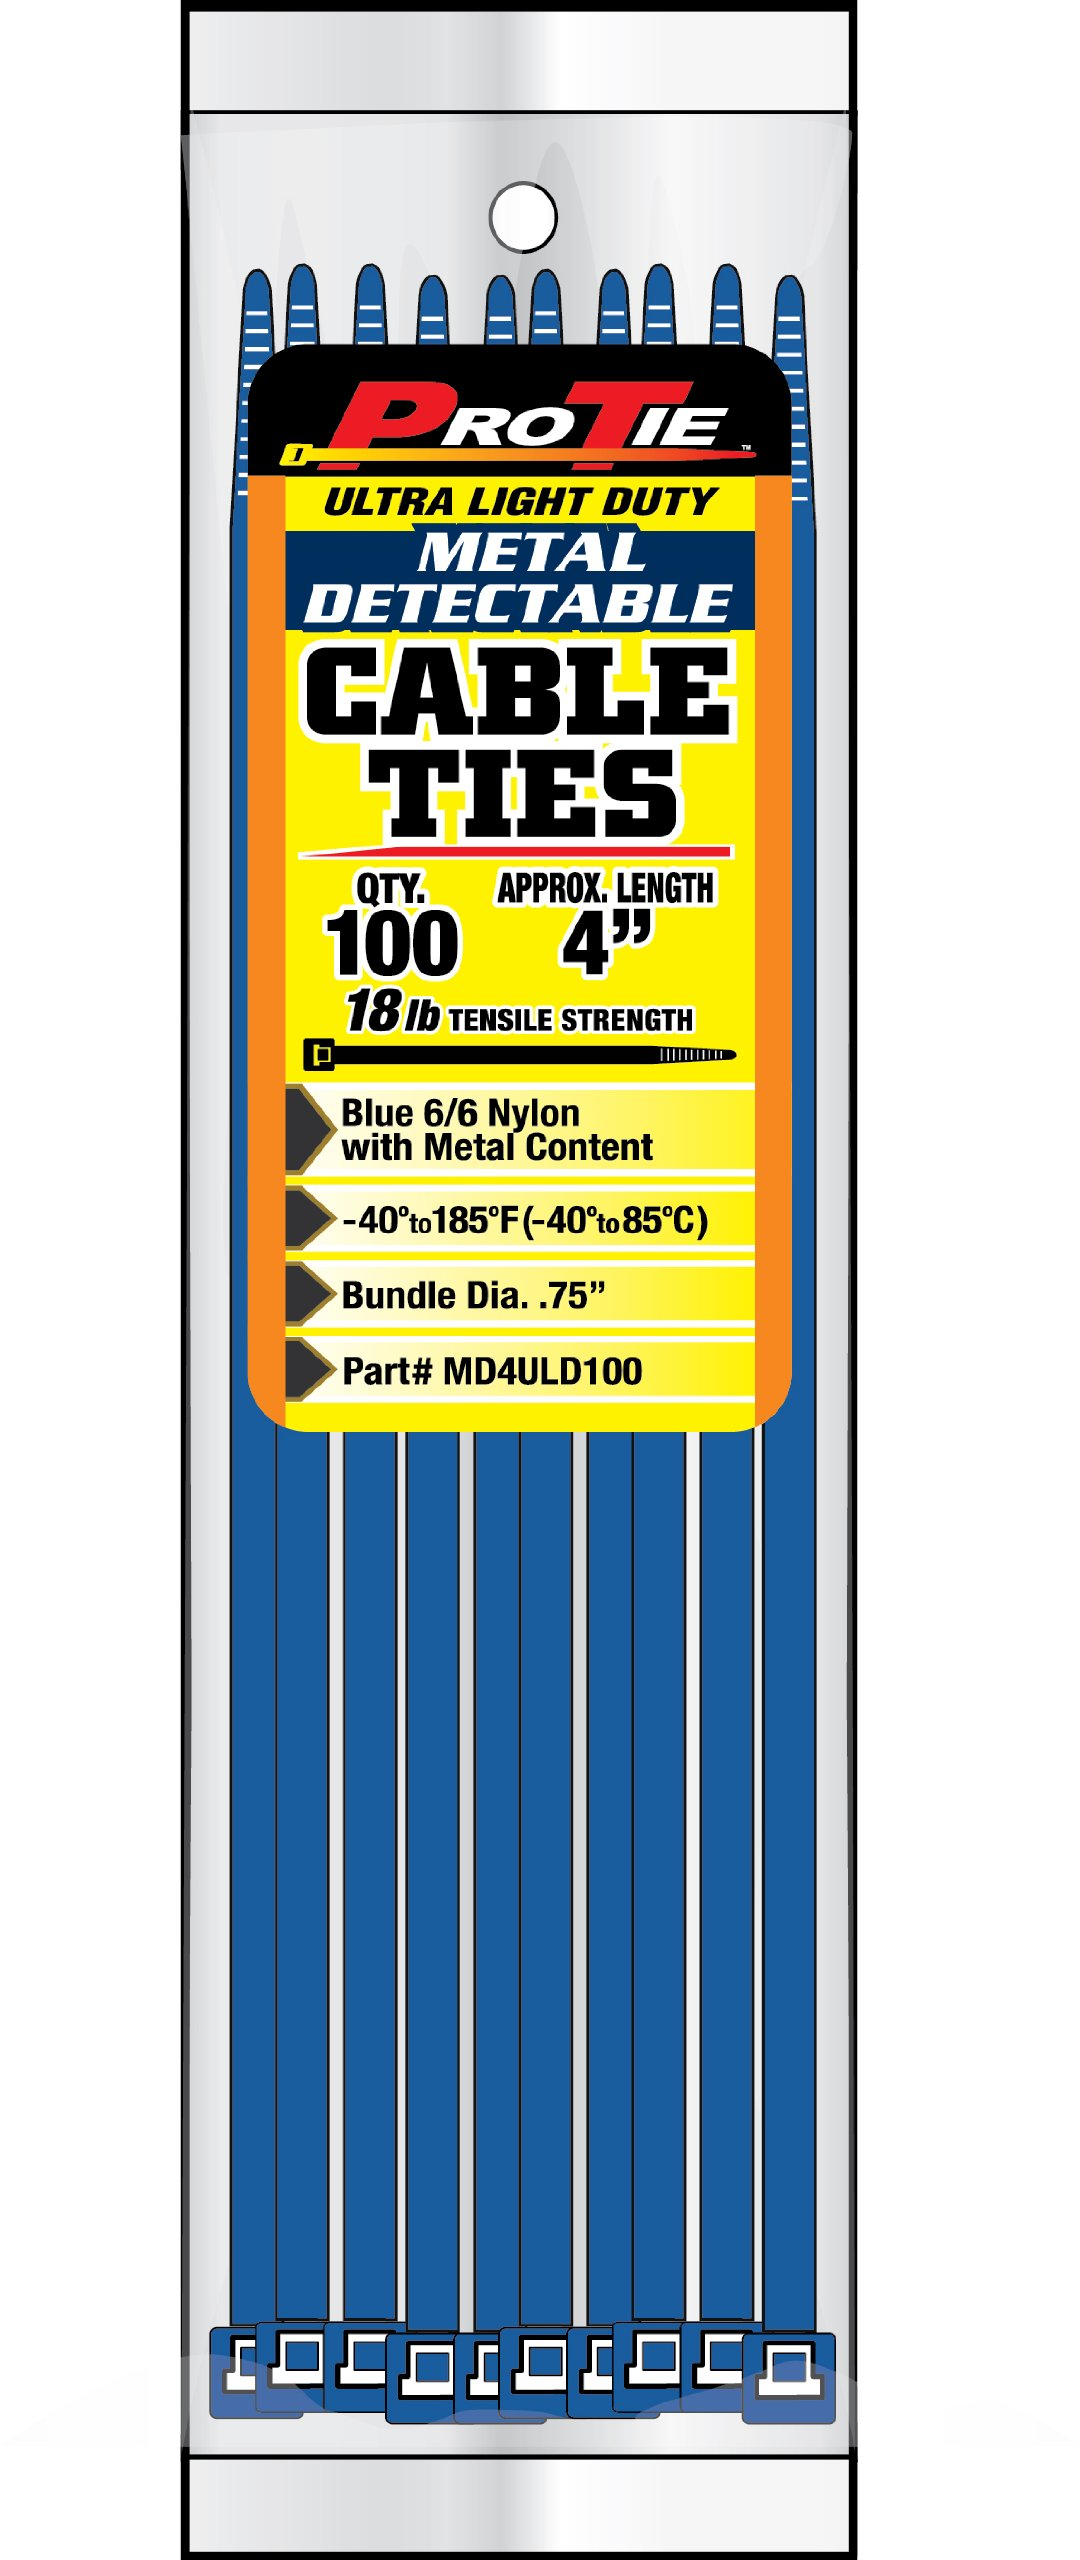 Pro Tie MD4ULD100 4-Inch Metal Detectable Ultra Light Duty Cable Ties, Blue, 100-Pack by Pro Tie